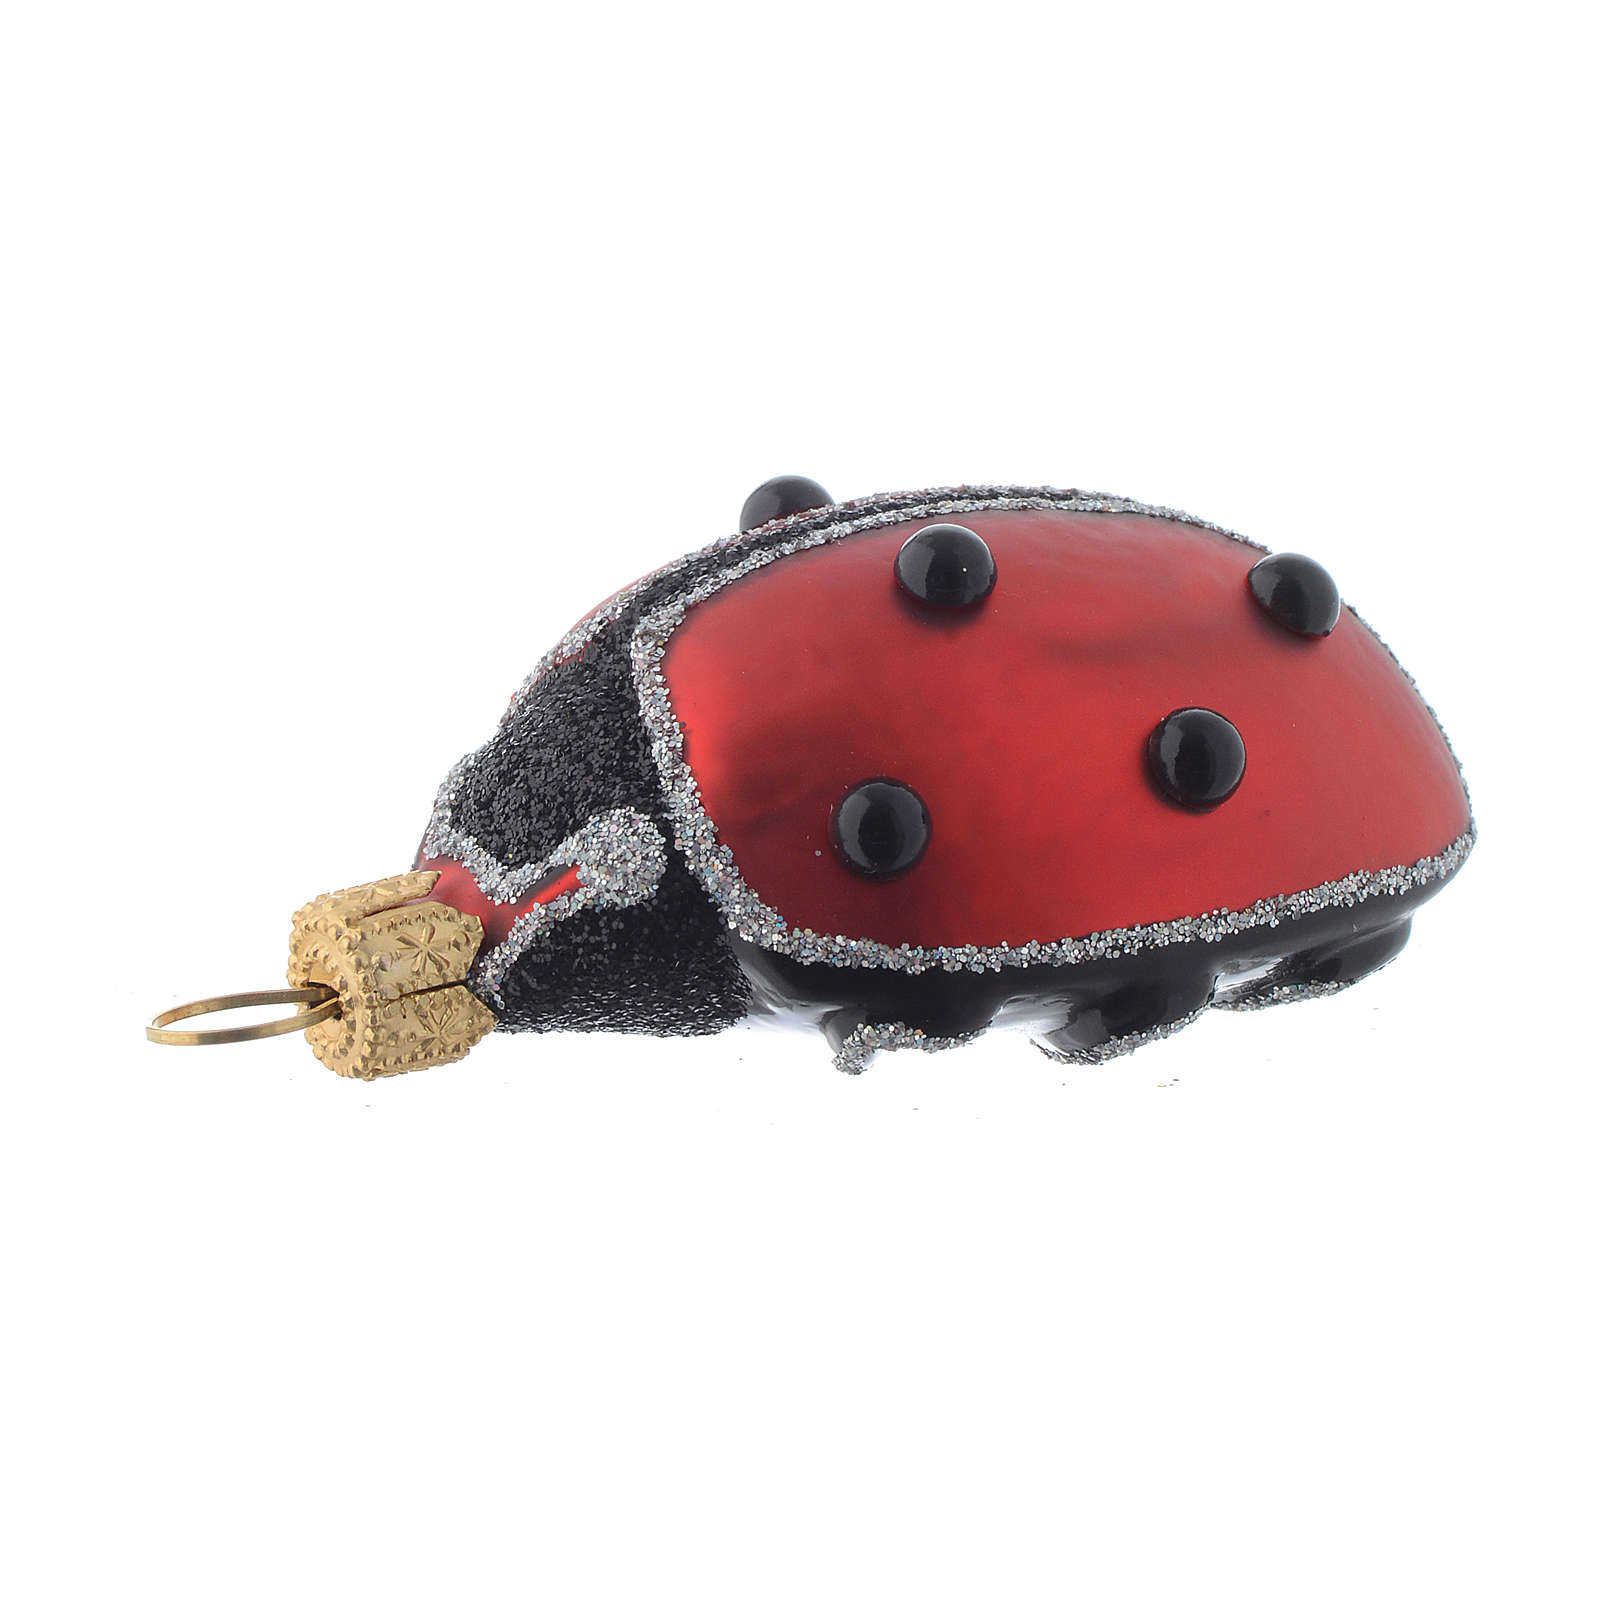 Blown glass Christmas ornament, ladybug 4